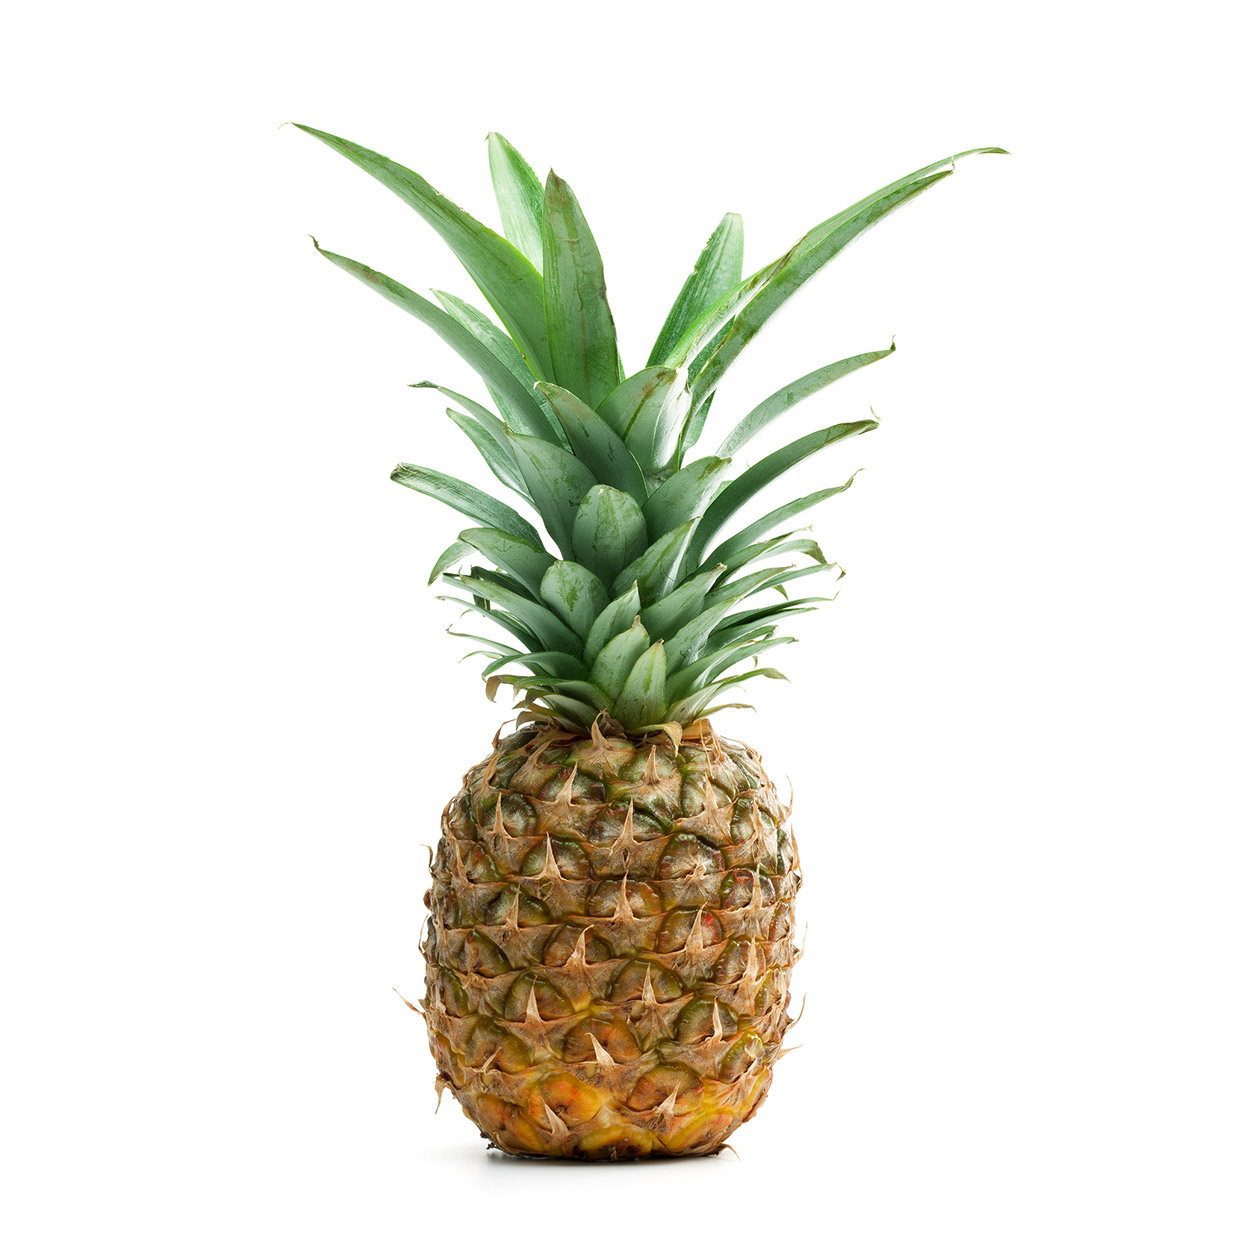 Why Does Pineapple Spoil Milk?